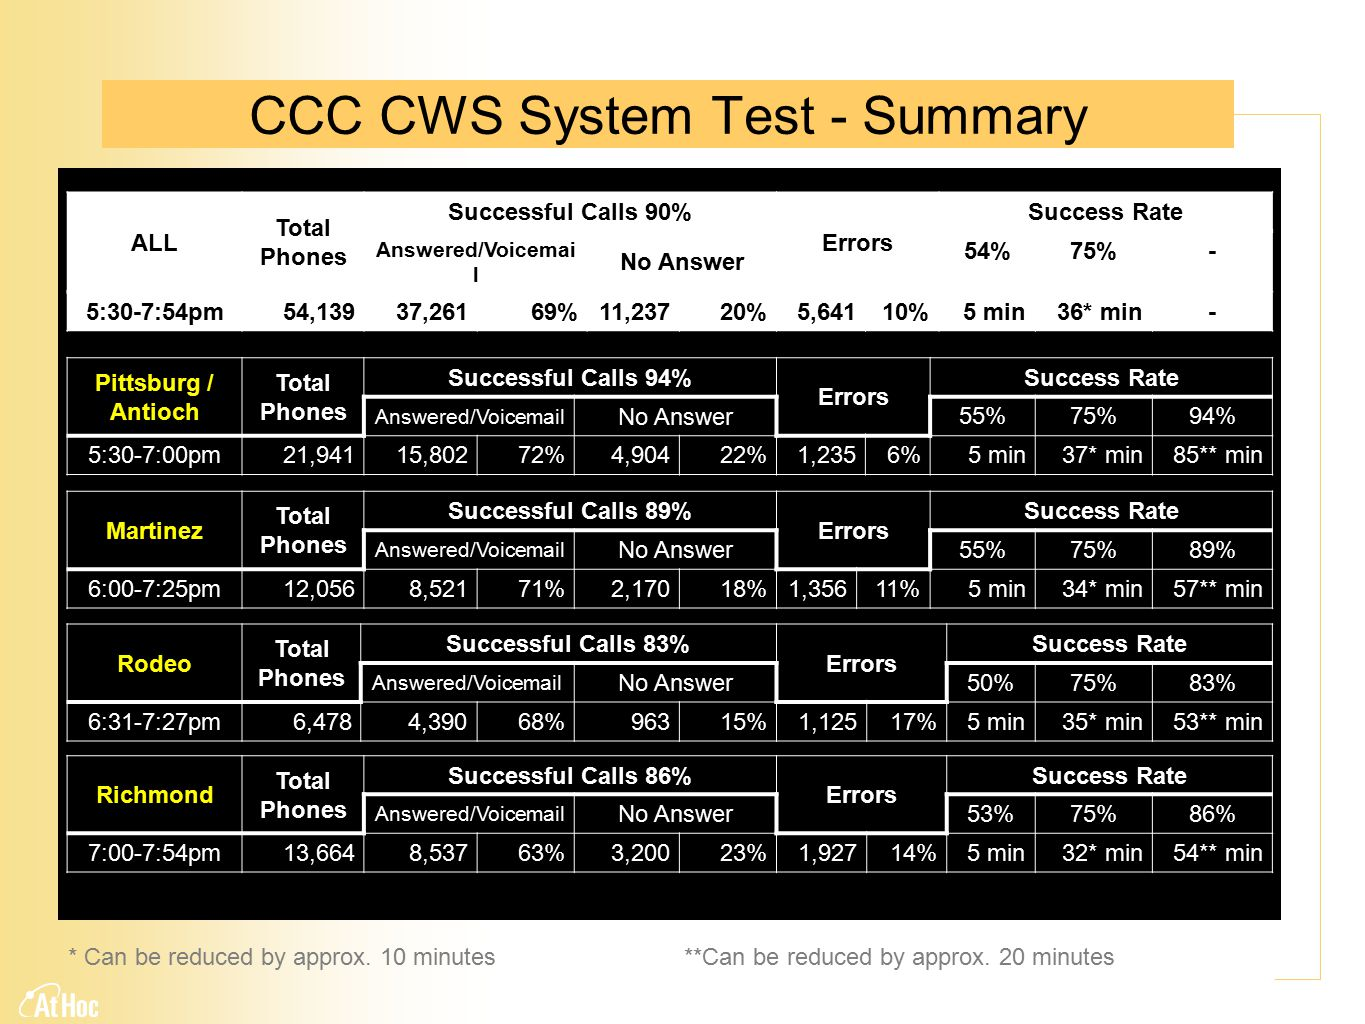 CCC CWS System Test - Summary Rodeo Total Phones Successful Calls 83% Errors Success Rate Answered/Voicemail No Answer 50%75%83% 6:31-7:27pm6,4784,39068%96315%1,12517%5 min35* min53** min Richmond Total Phones Successful Calls 86% Errors Success Rate Answered/Voicemail No Answer 53%75%86% 7:00-7:54pm13,6648,53763%3,20023%1,92714%5 min32* min54** min Martinez Total Phones Successful Calls 89% Errors Success Rate Answered/Voicemail No Answer 55%75%89% 6:00-7:25pm12,0568,52171%2,17018%1,35611%5 min34* min57** min Pittsburg / Antioch Total Phones Successful Calls 94% Errors Success Rate Answered/Voicemail No Answer 55%75%94% 5:30-7:00pm21,94115,80272%4,90422%1,2356%5 min37* min85** min * Can be reduced by approx.